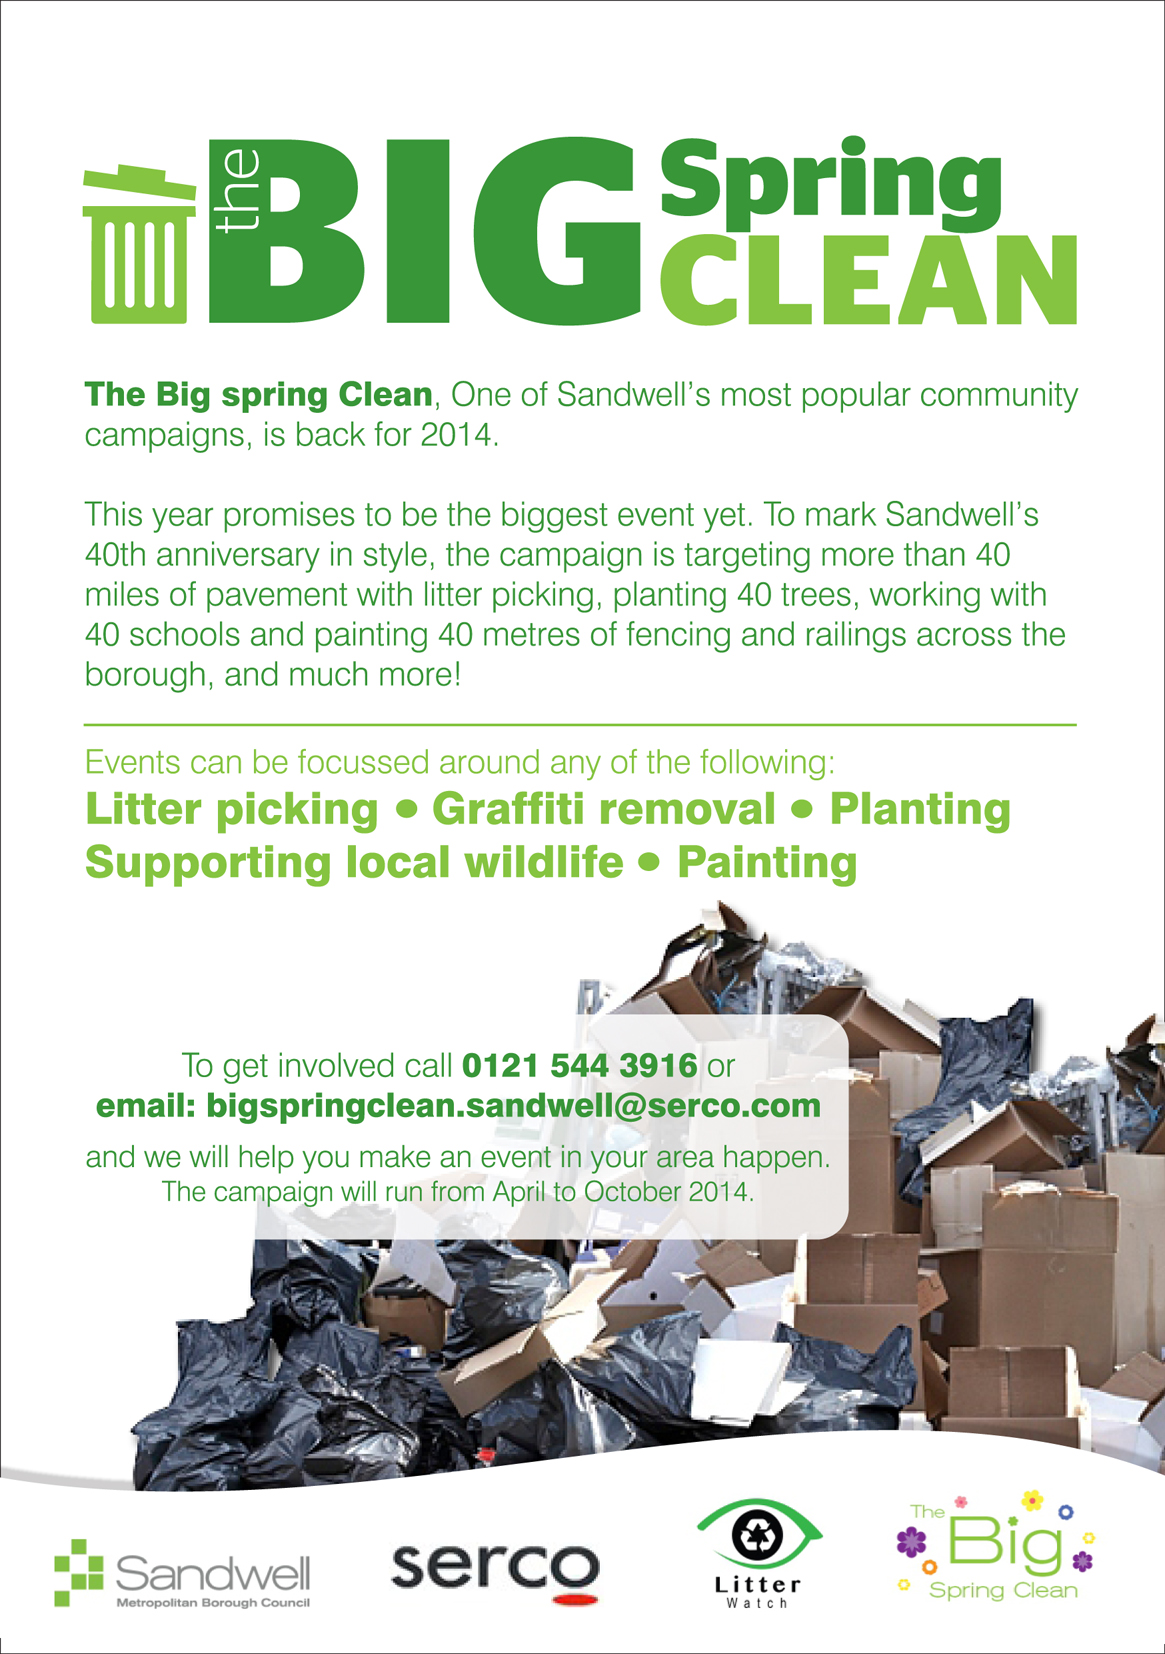 The Big Spring Clean in Sandwell